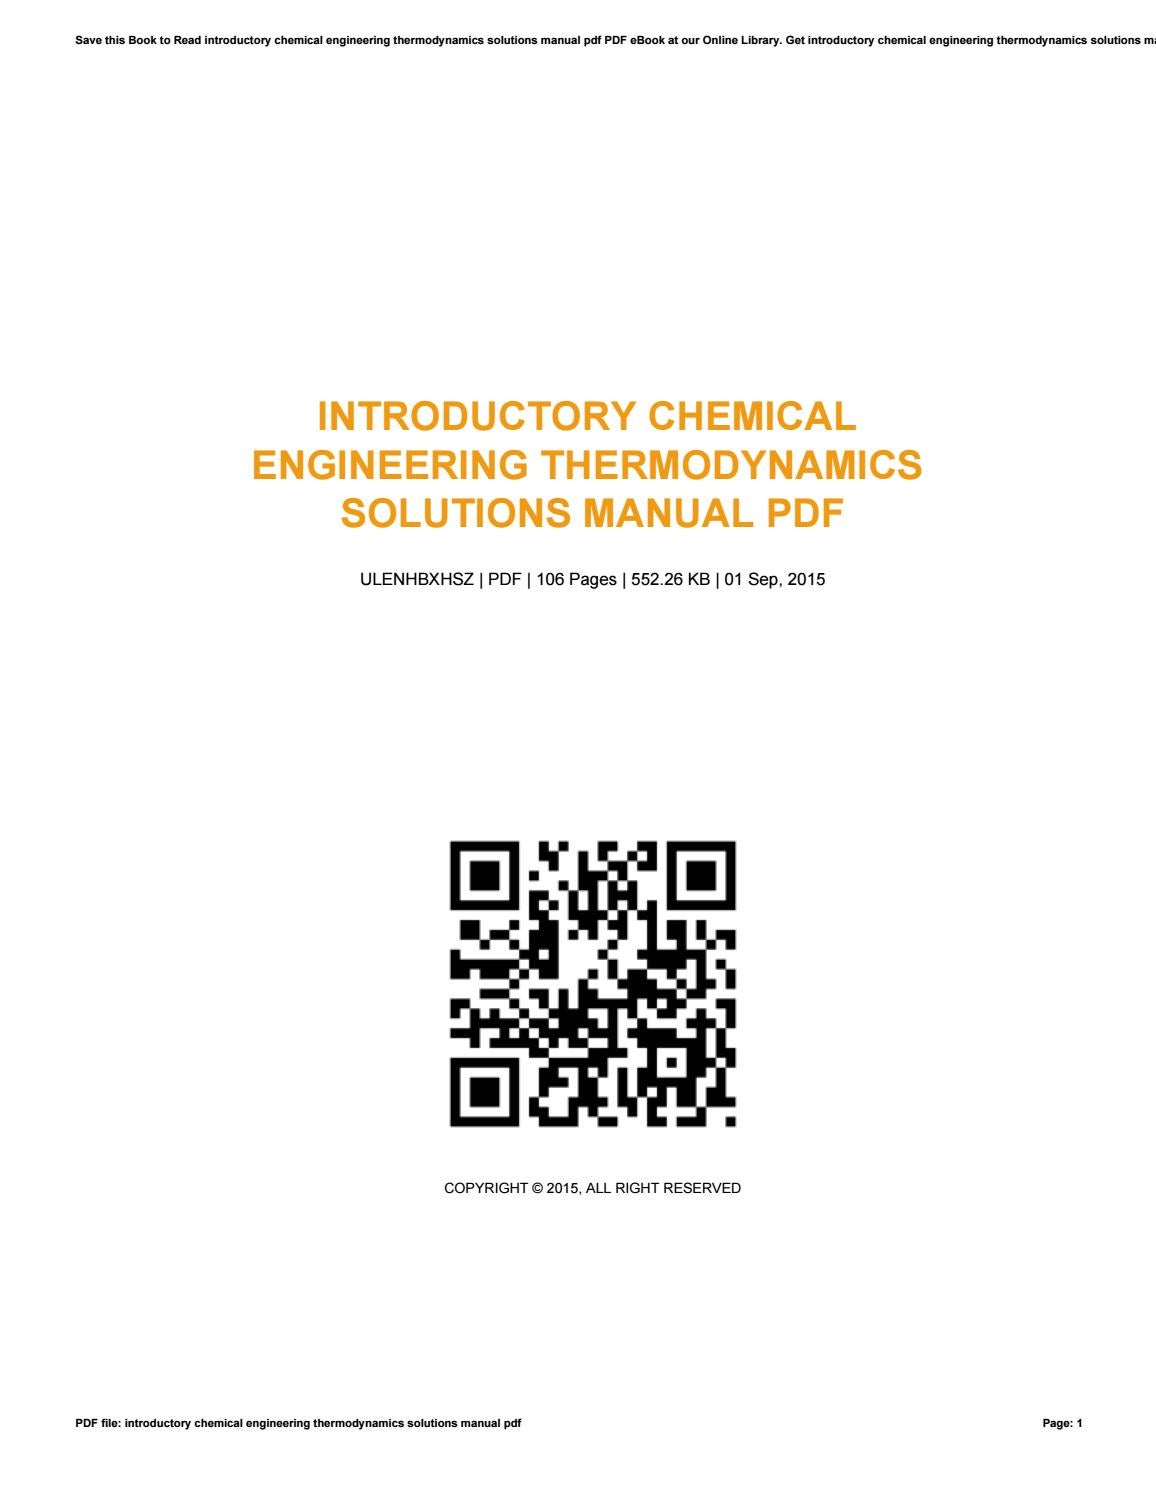 Introductory chemical engineering thermodynamics solutions manual pdf by  LisaGrayer2624 - issuu